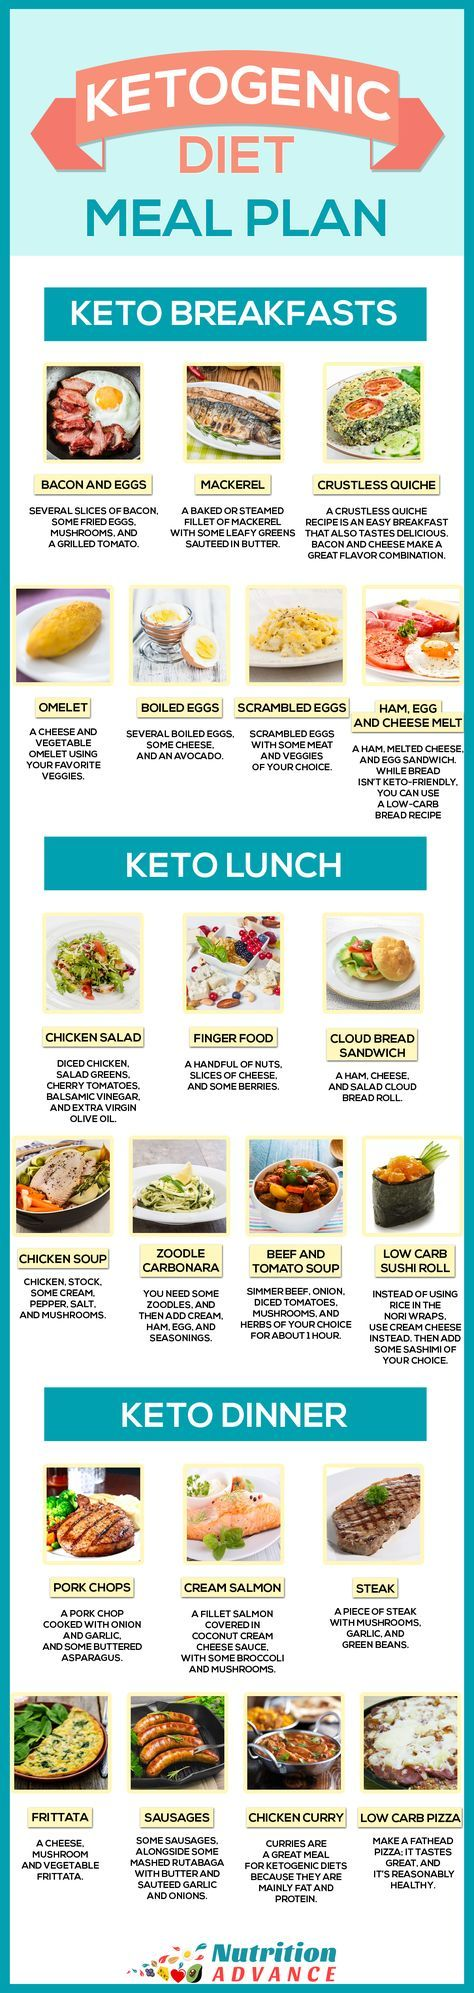 The Ketogenic Diet An Ultimate Guide To Keto Nutrition Advance Ketogenic Diet Meal Plan Keto Meal Plan Diet